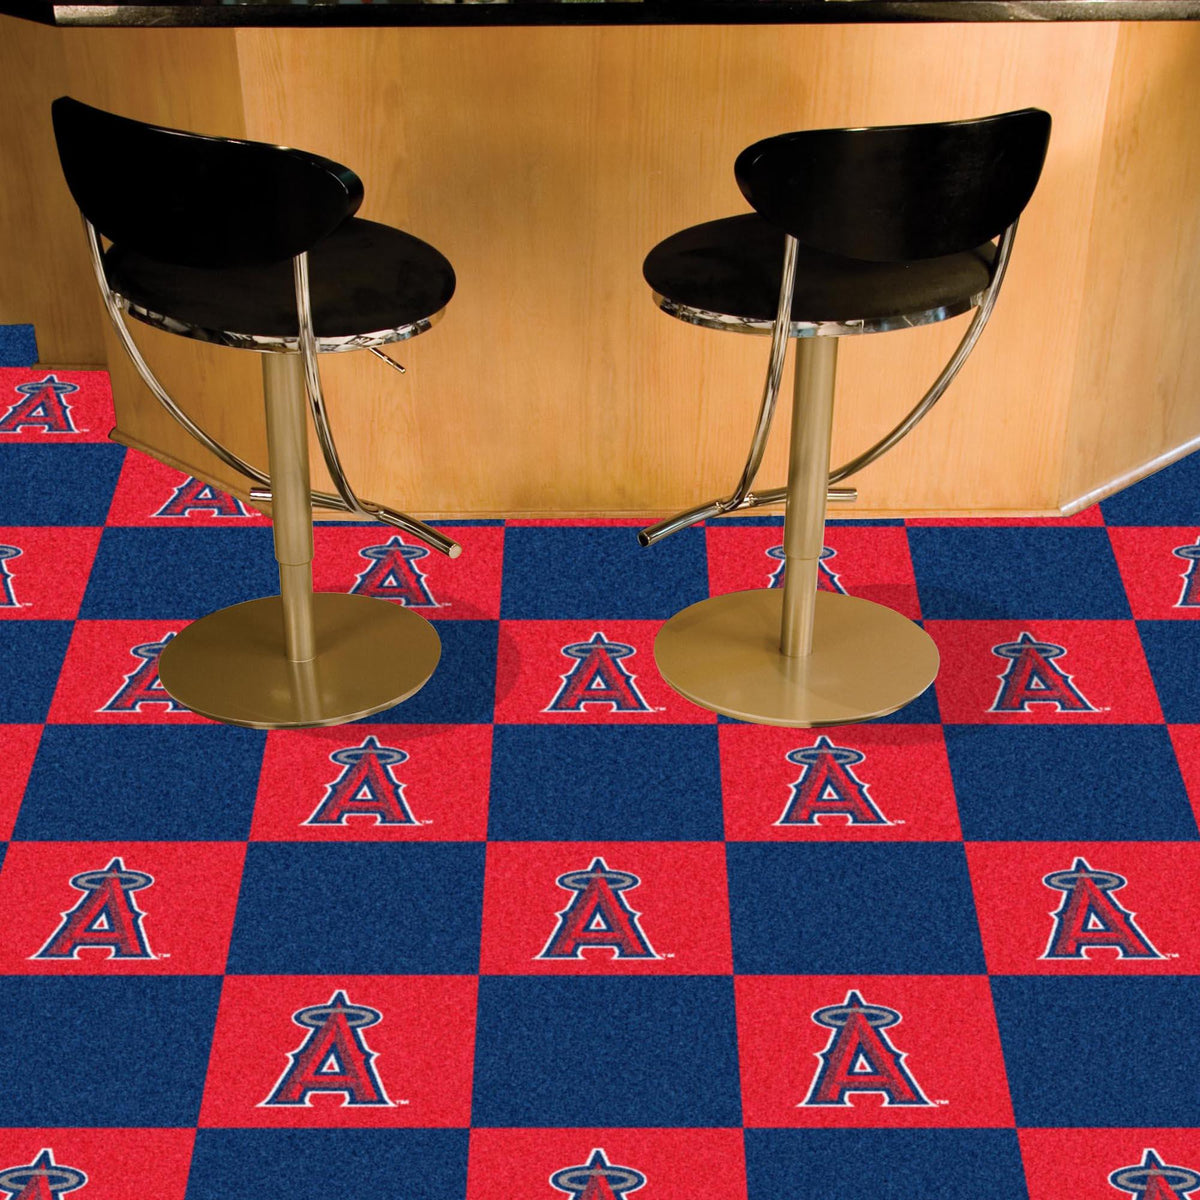 MLB - Team Carpet Tiles MLB Mats, Carpet Tile Flooring, Team Carpet Tiles, MLB, Home Fan Mats Los Angeles Angels